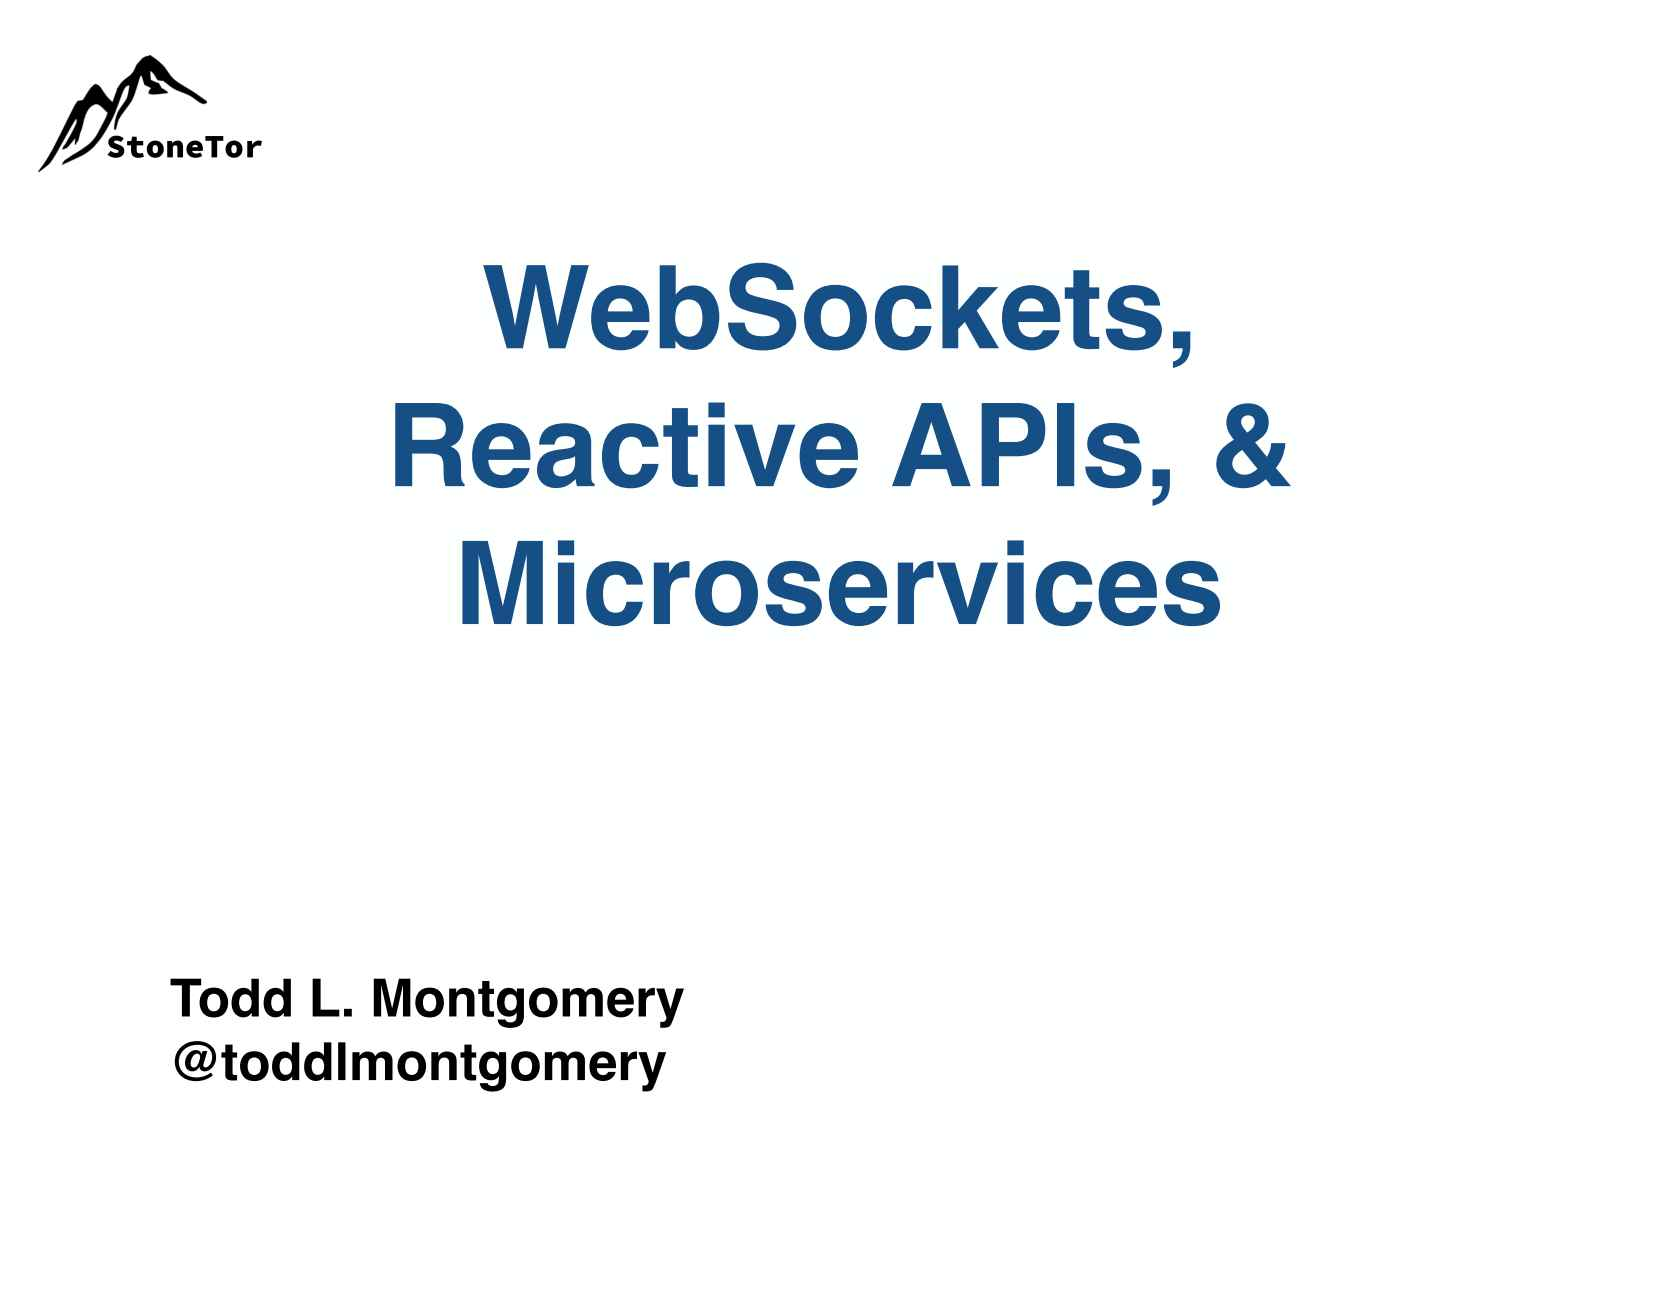 WebSockets, Reactive APIs and Microservices